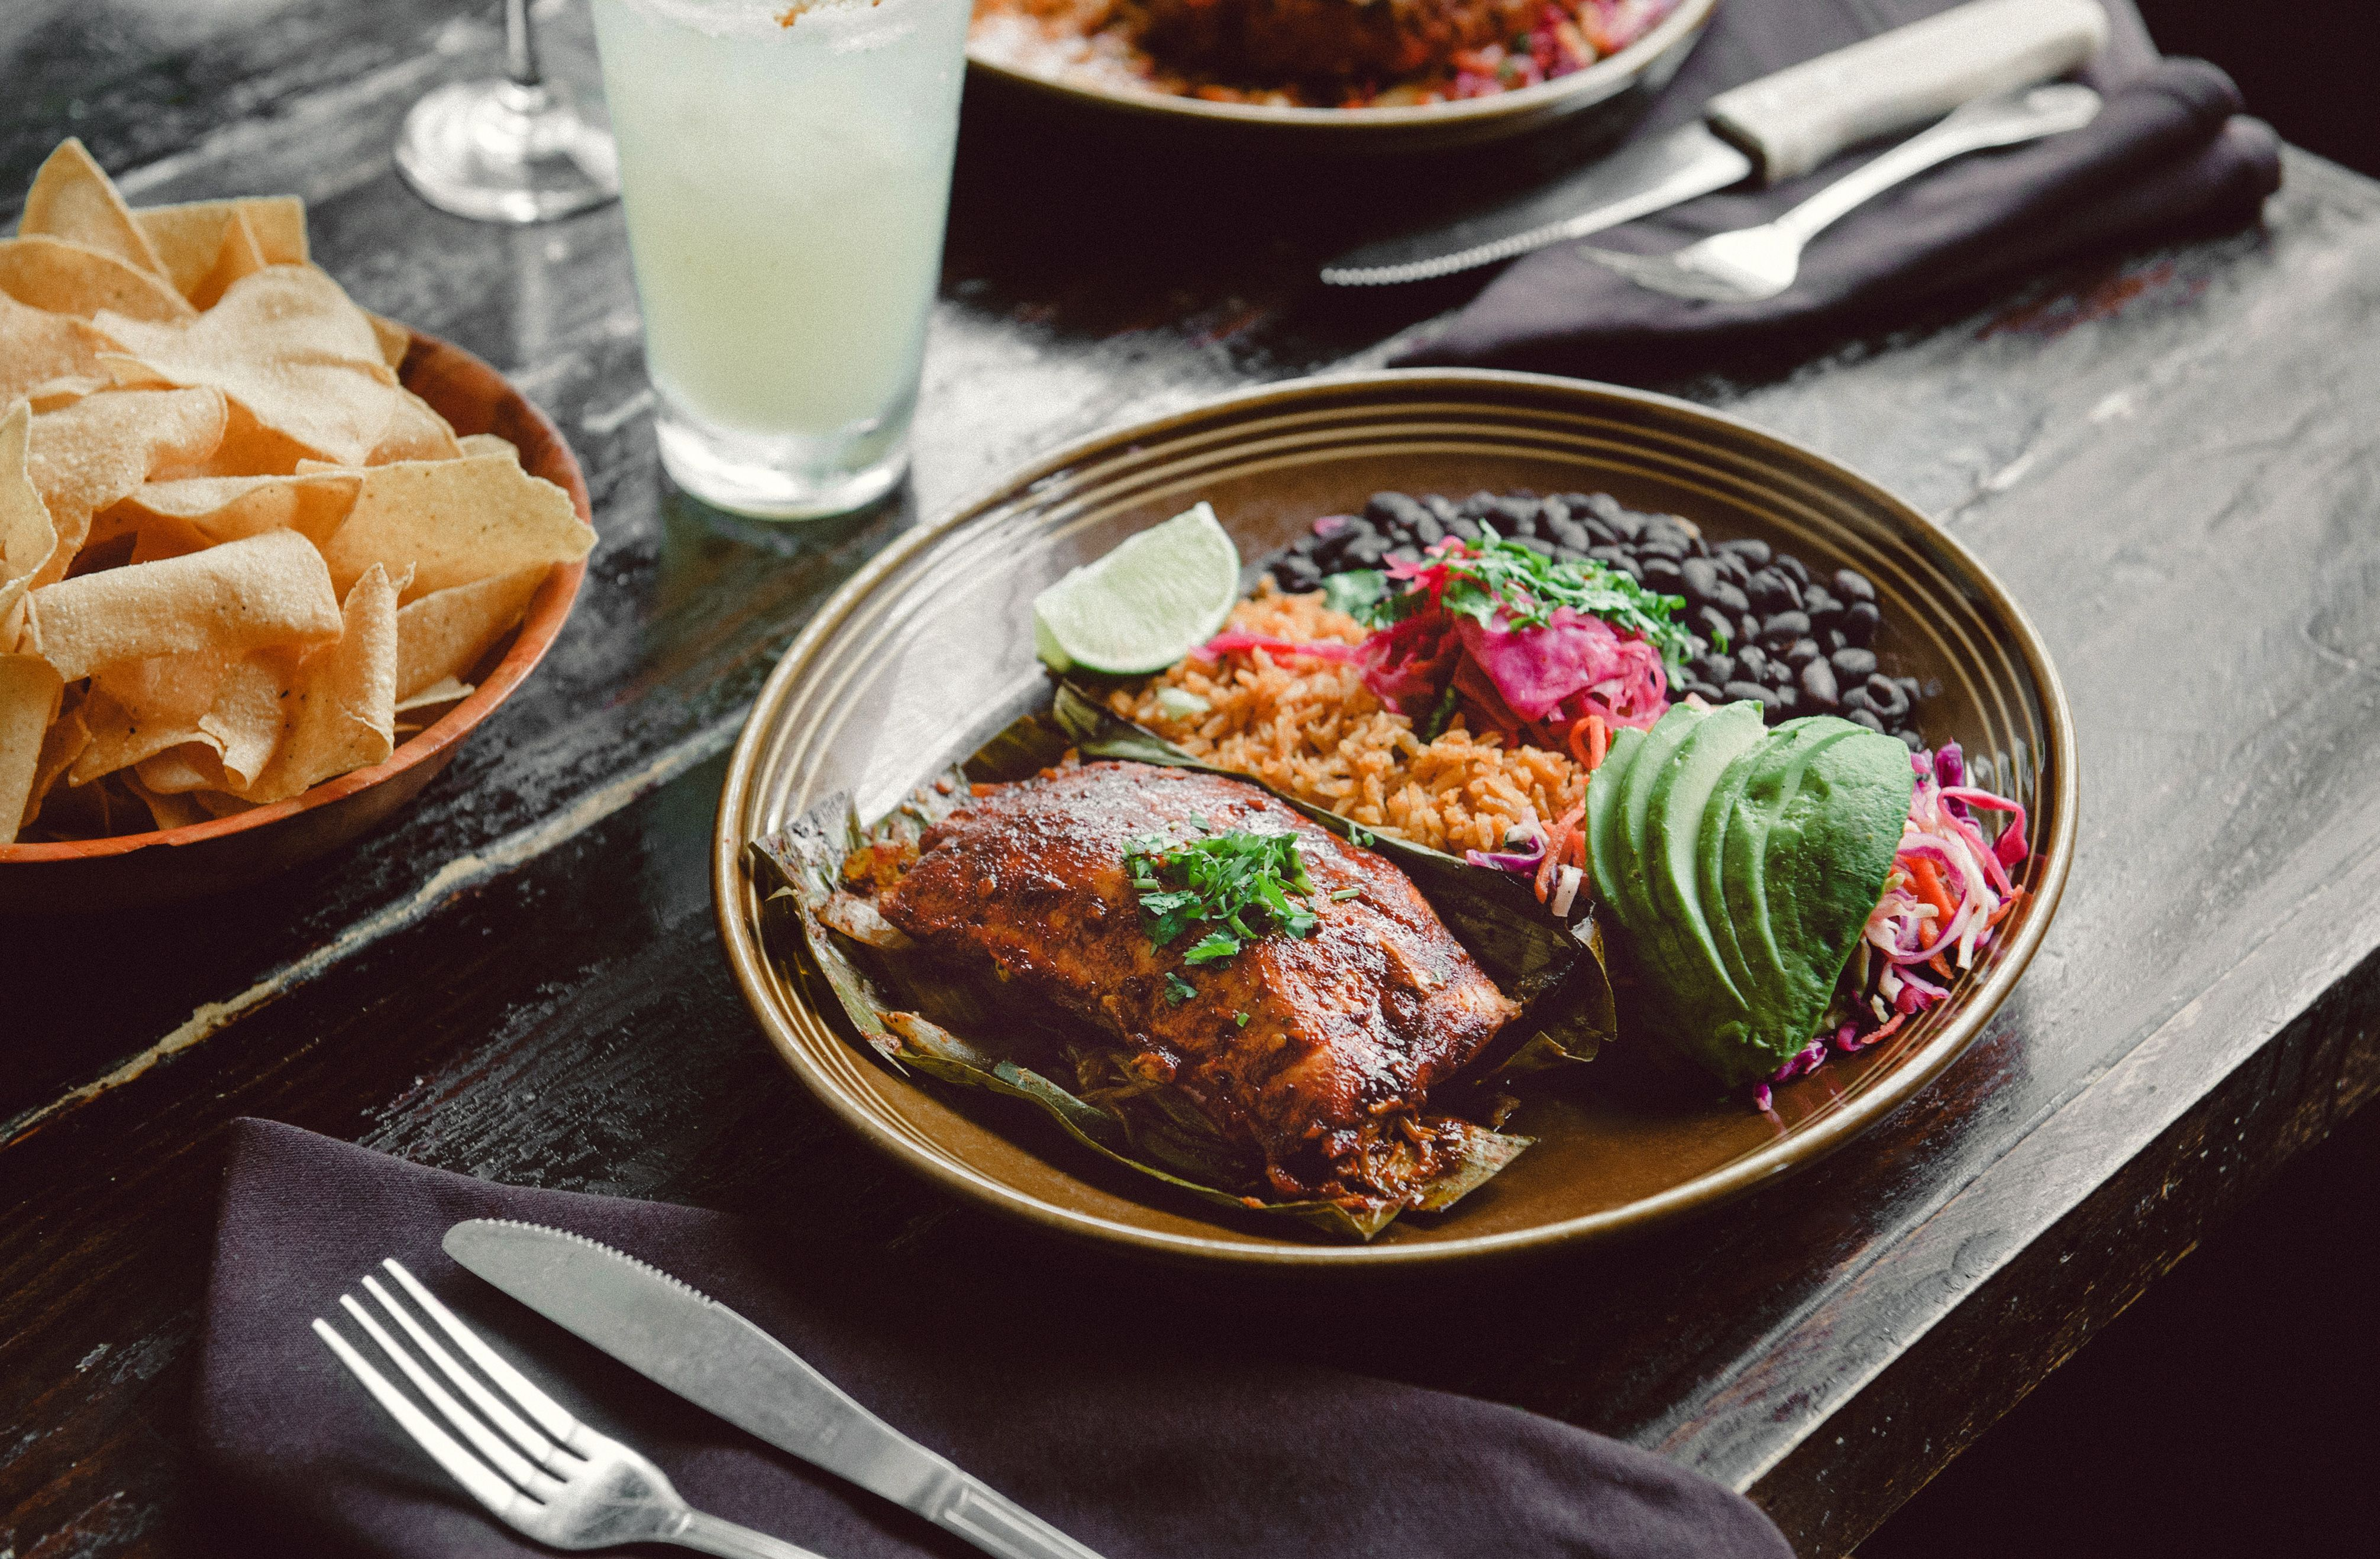 Salmon filet -- slow-cooked with pasilla peppers and onions, then baked in a banana leaf and topped with a tequila-ancho glaze. Served with traditional Mexican rice, black beans and sliced avocado.